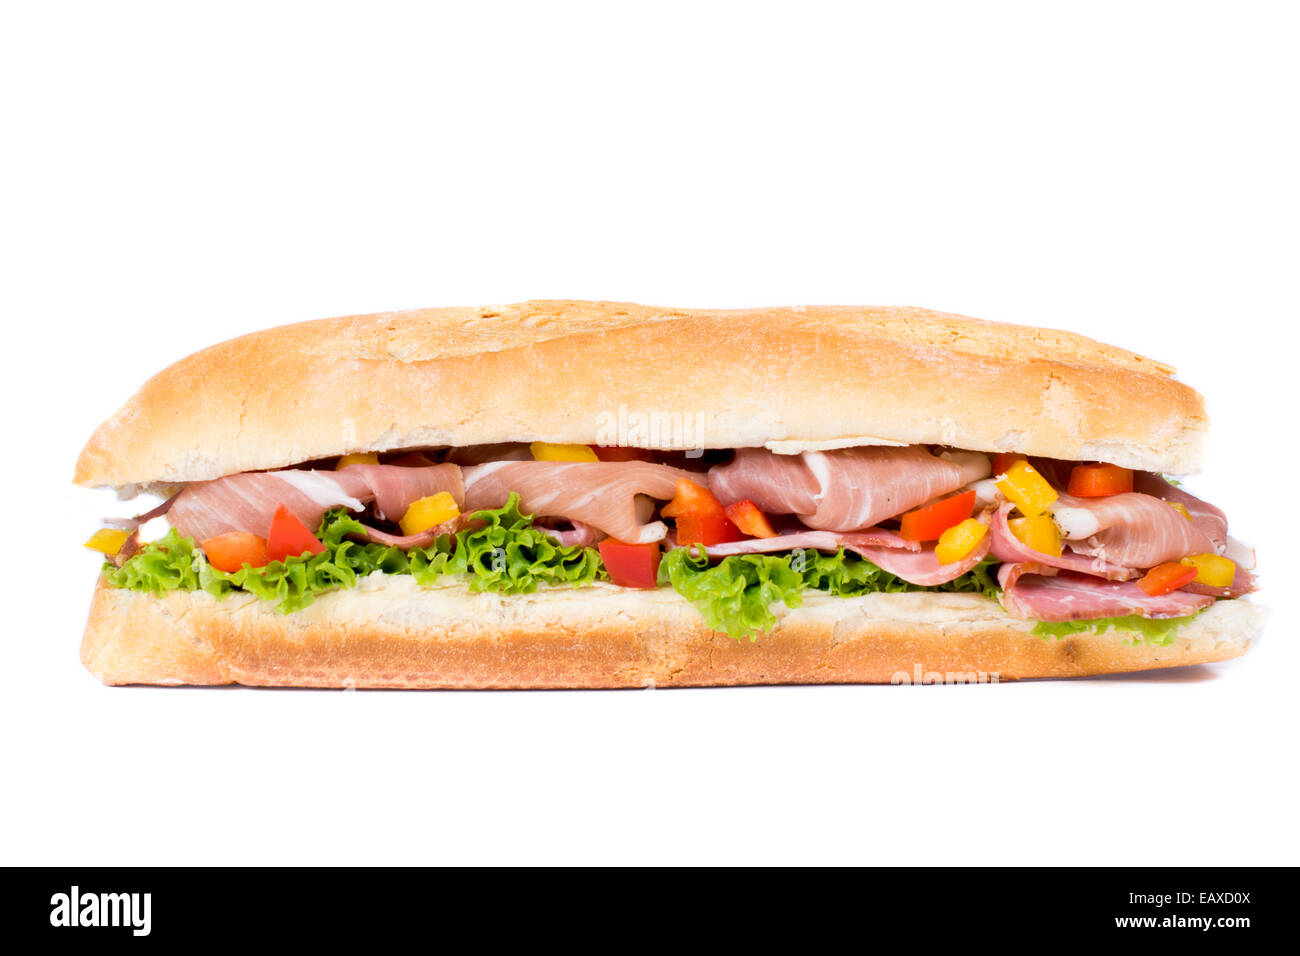 Isolated on white sandwich with vegetables and prosciutto - Stock Image